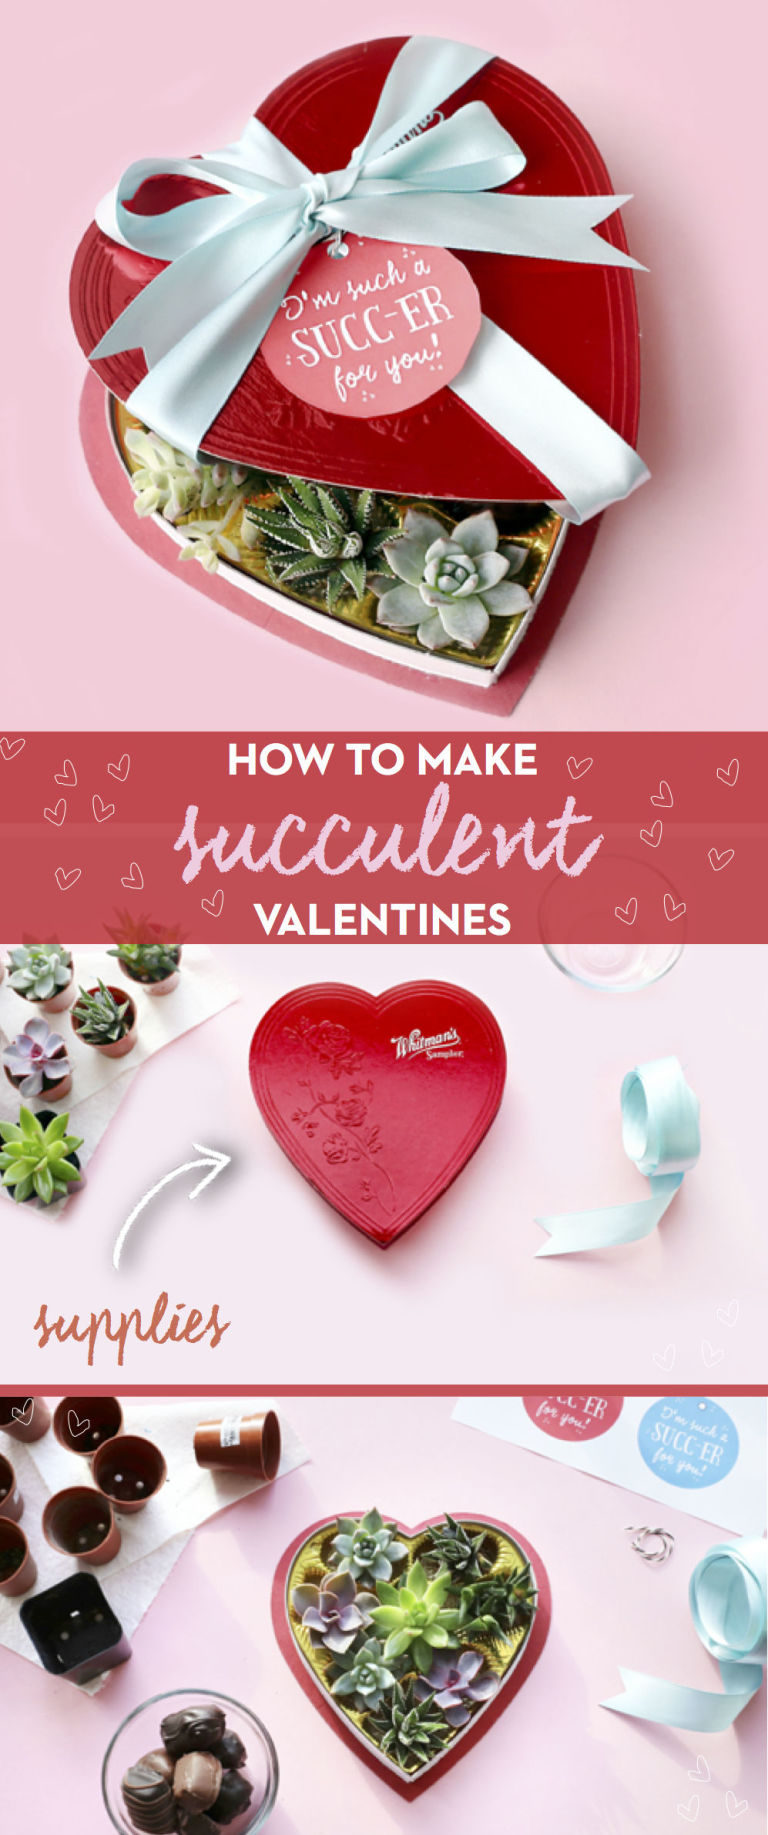 tutorial for making diy valentines using succulents and chocolate boxes - Cute Valentines Day Boxes